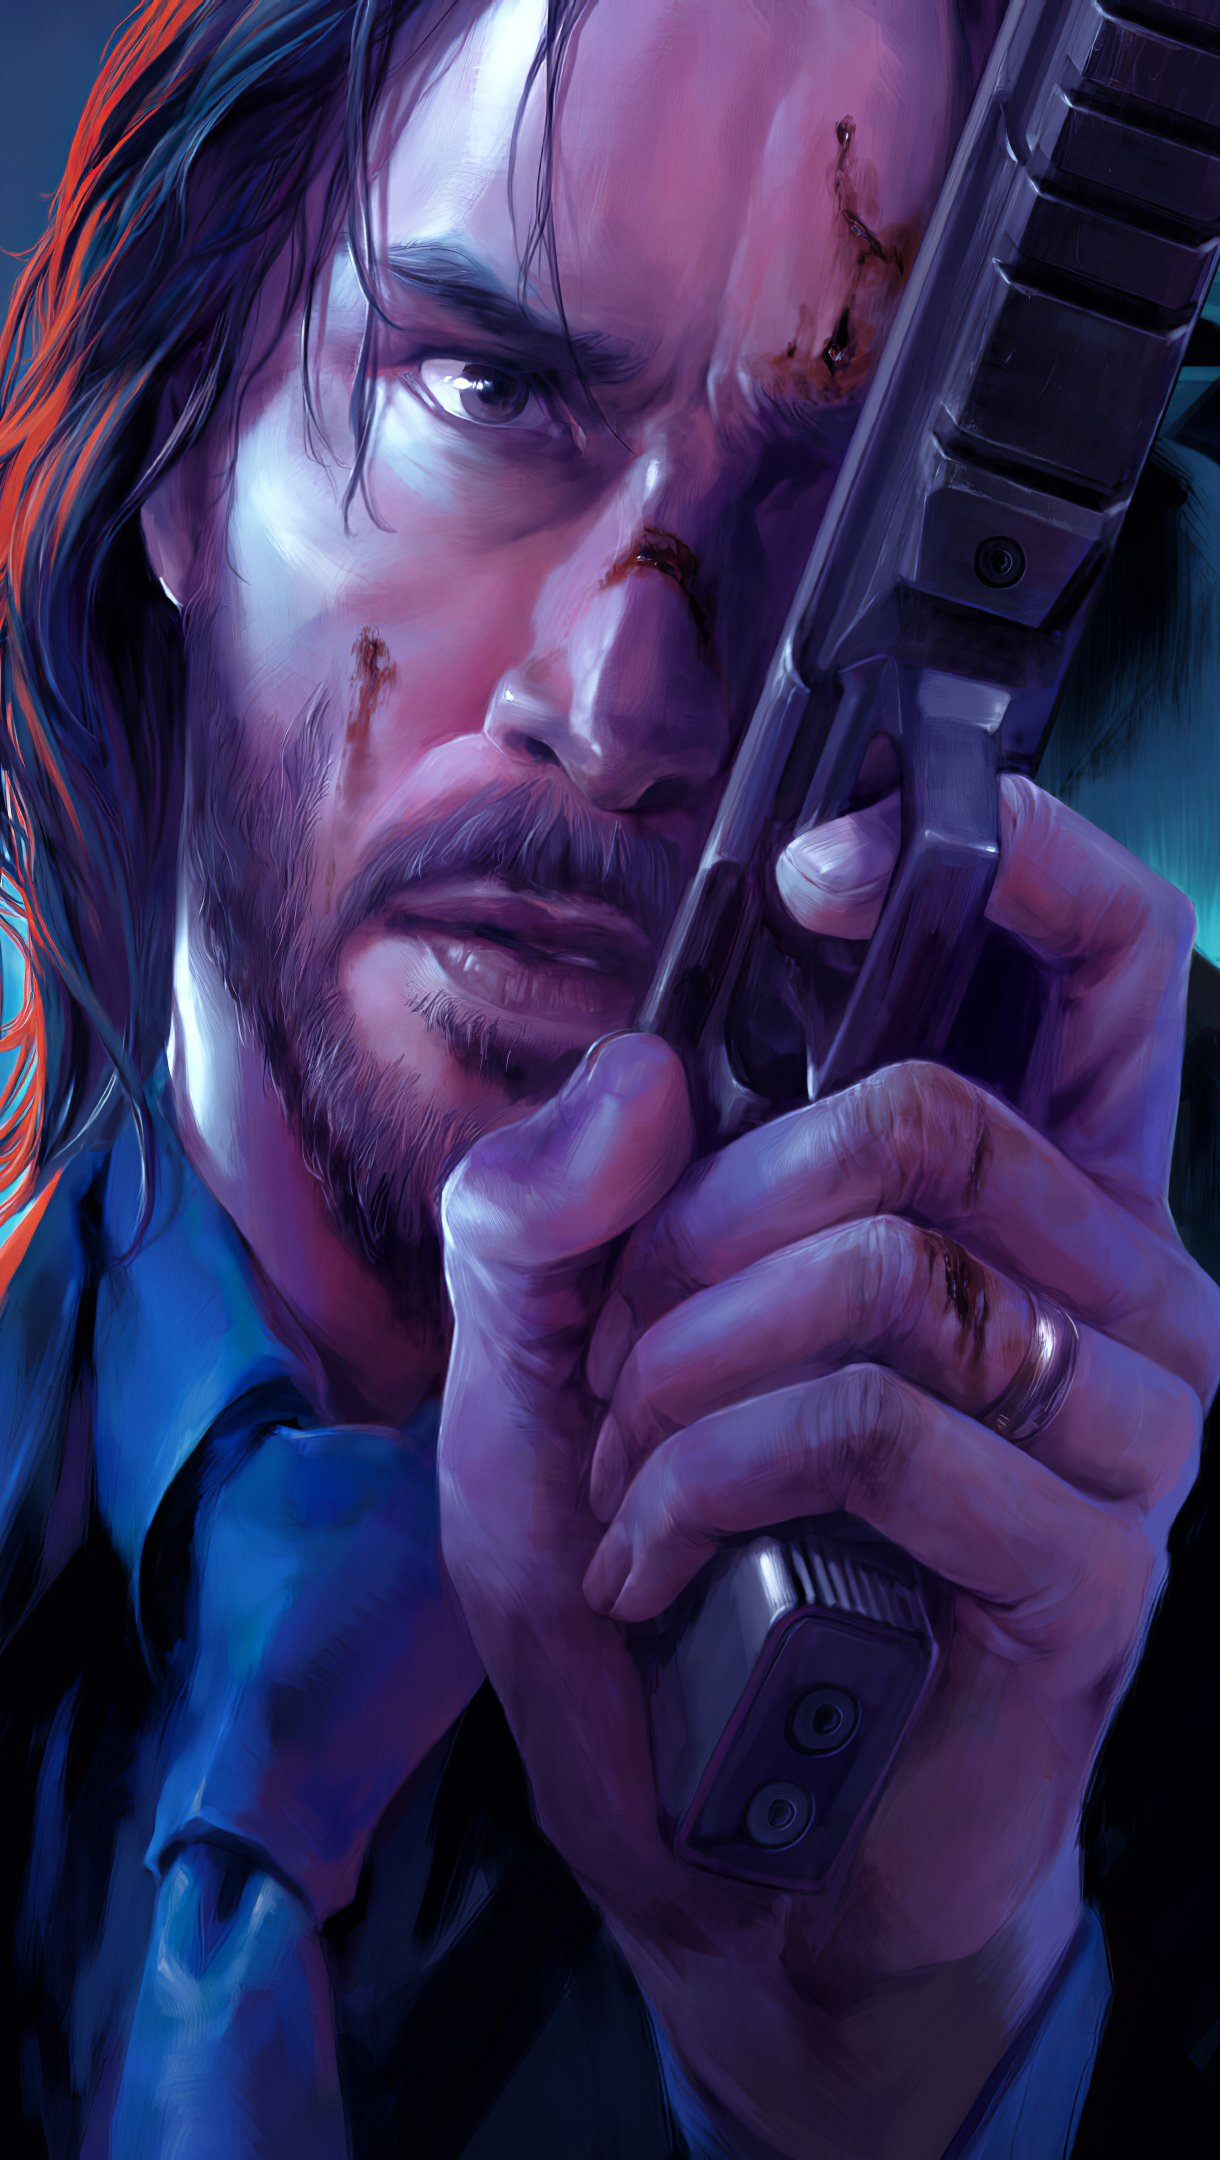 Wallpaper John Wick and dogs Vertical